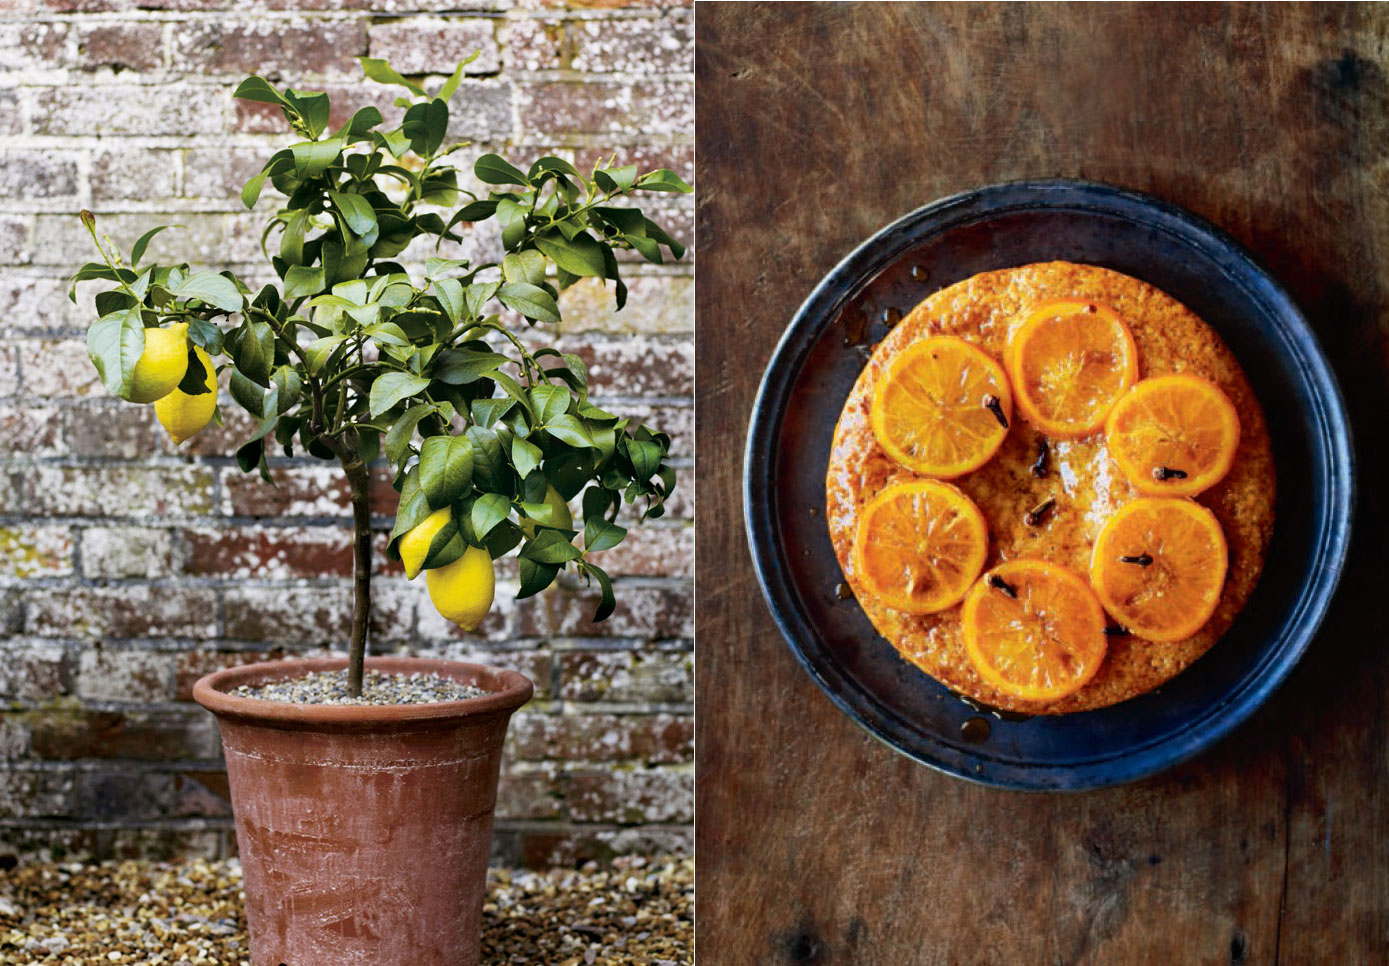 From Pot to Plate: How to Grow and Cook Lemons